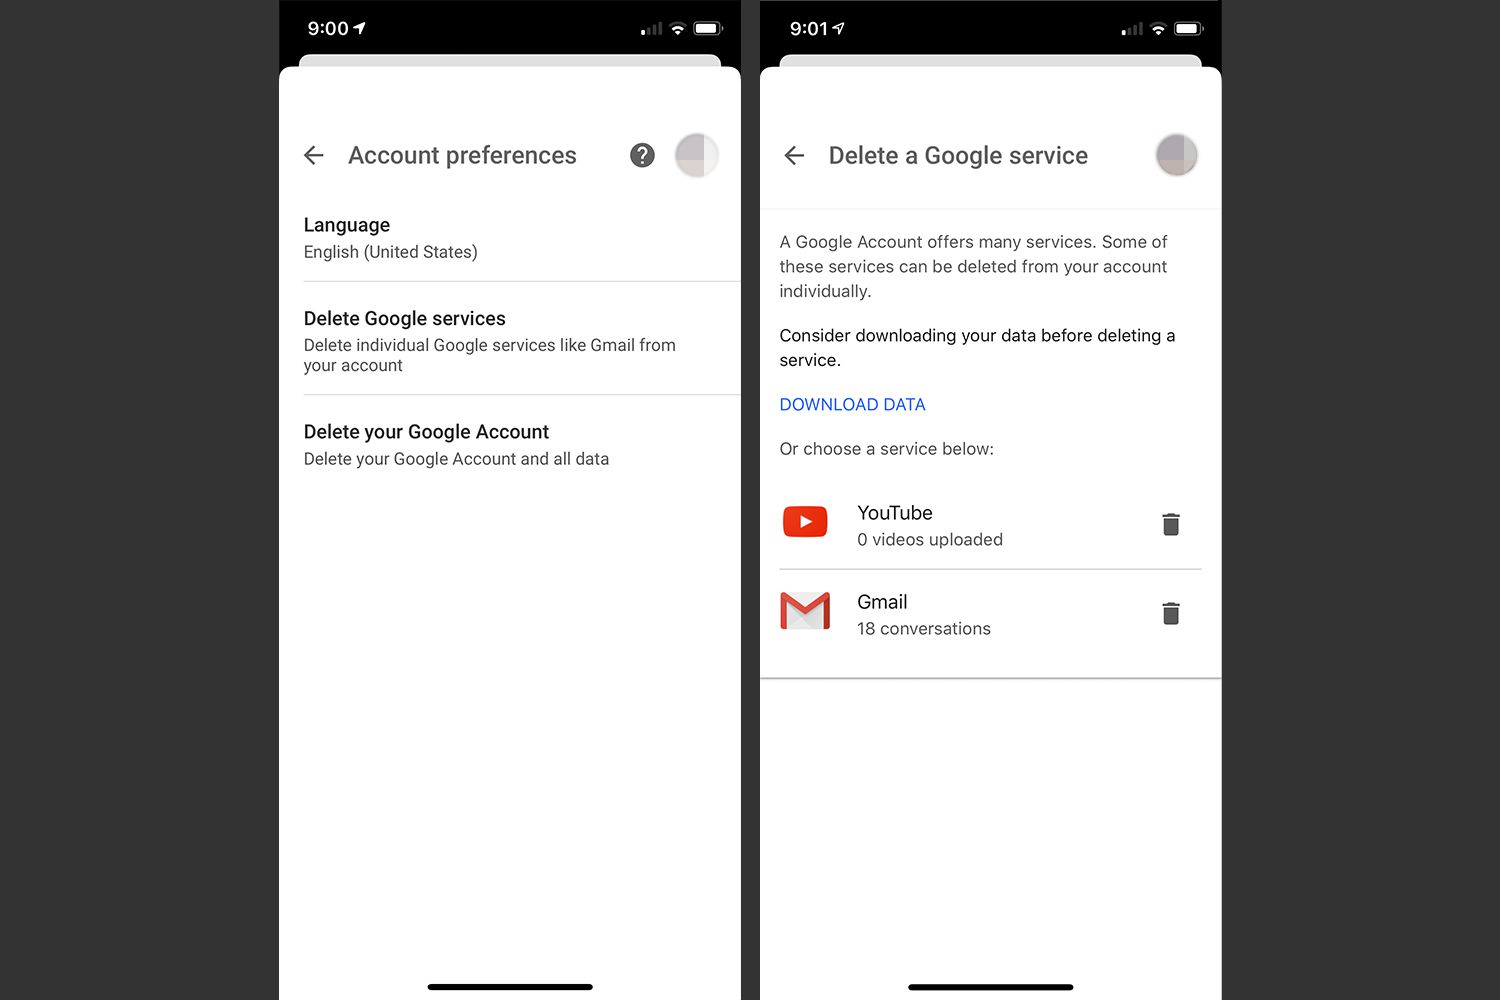 Account preferences and deleting google service screen in Google app